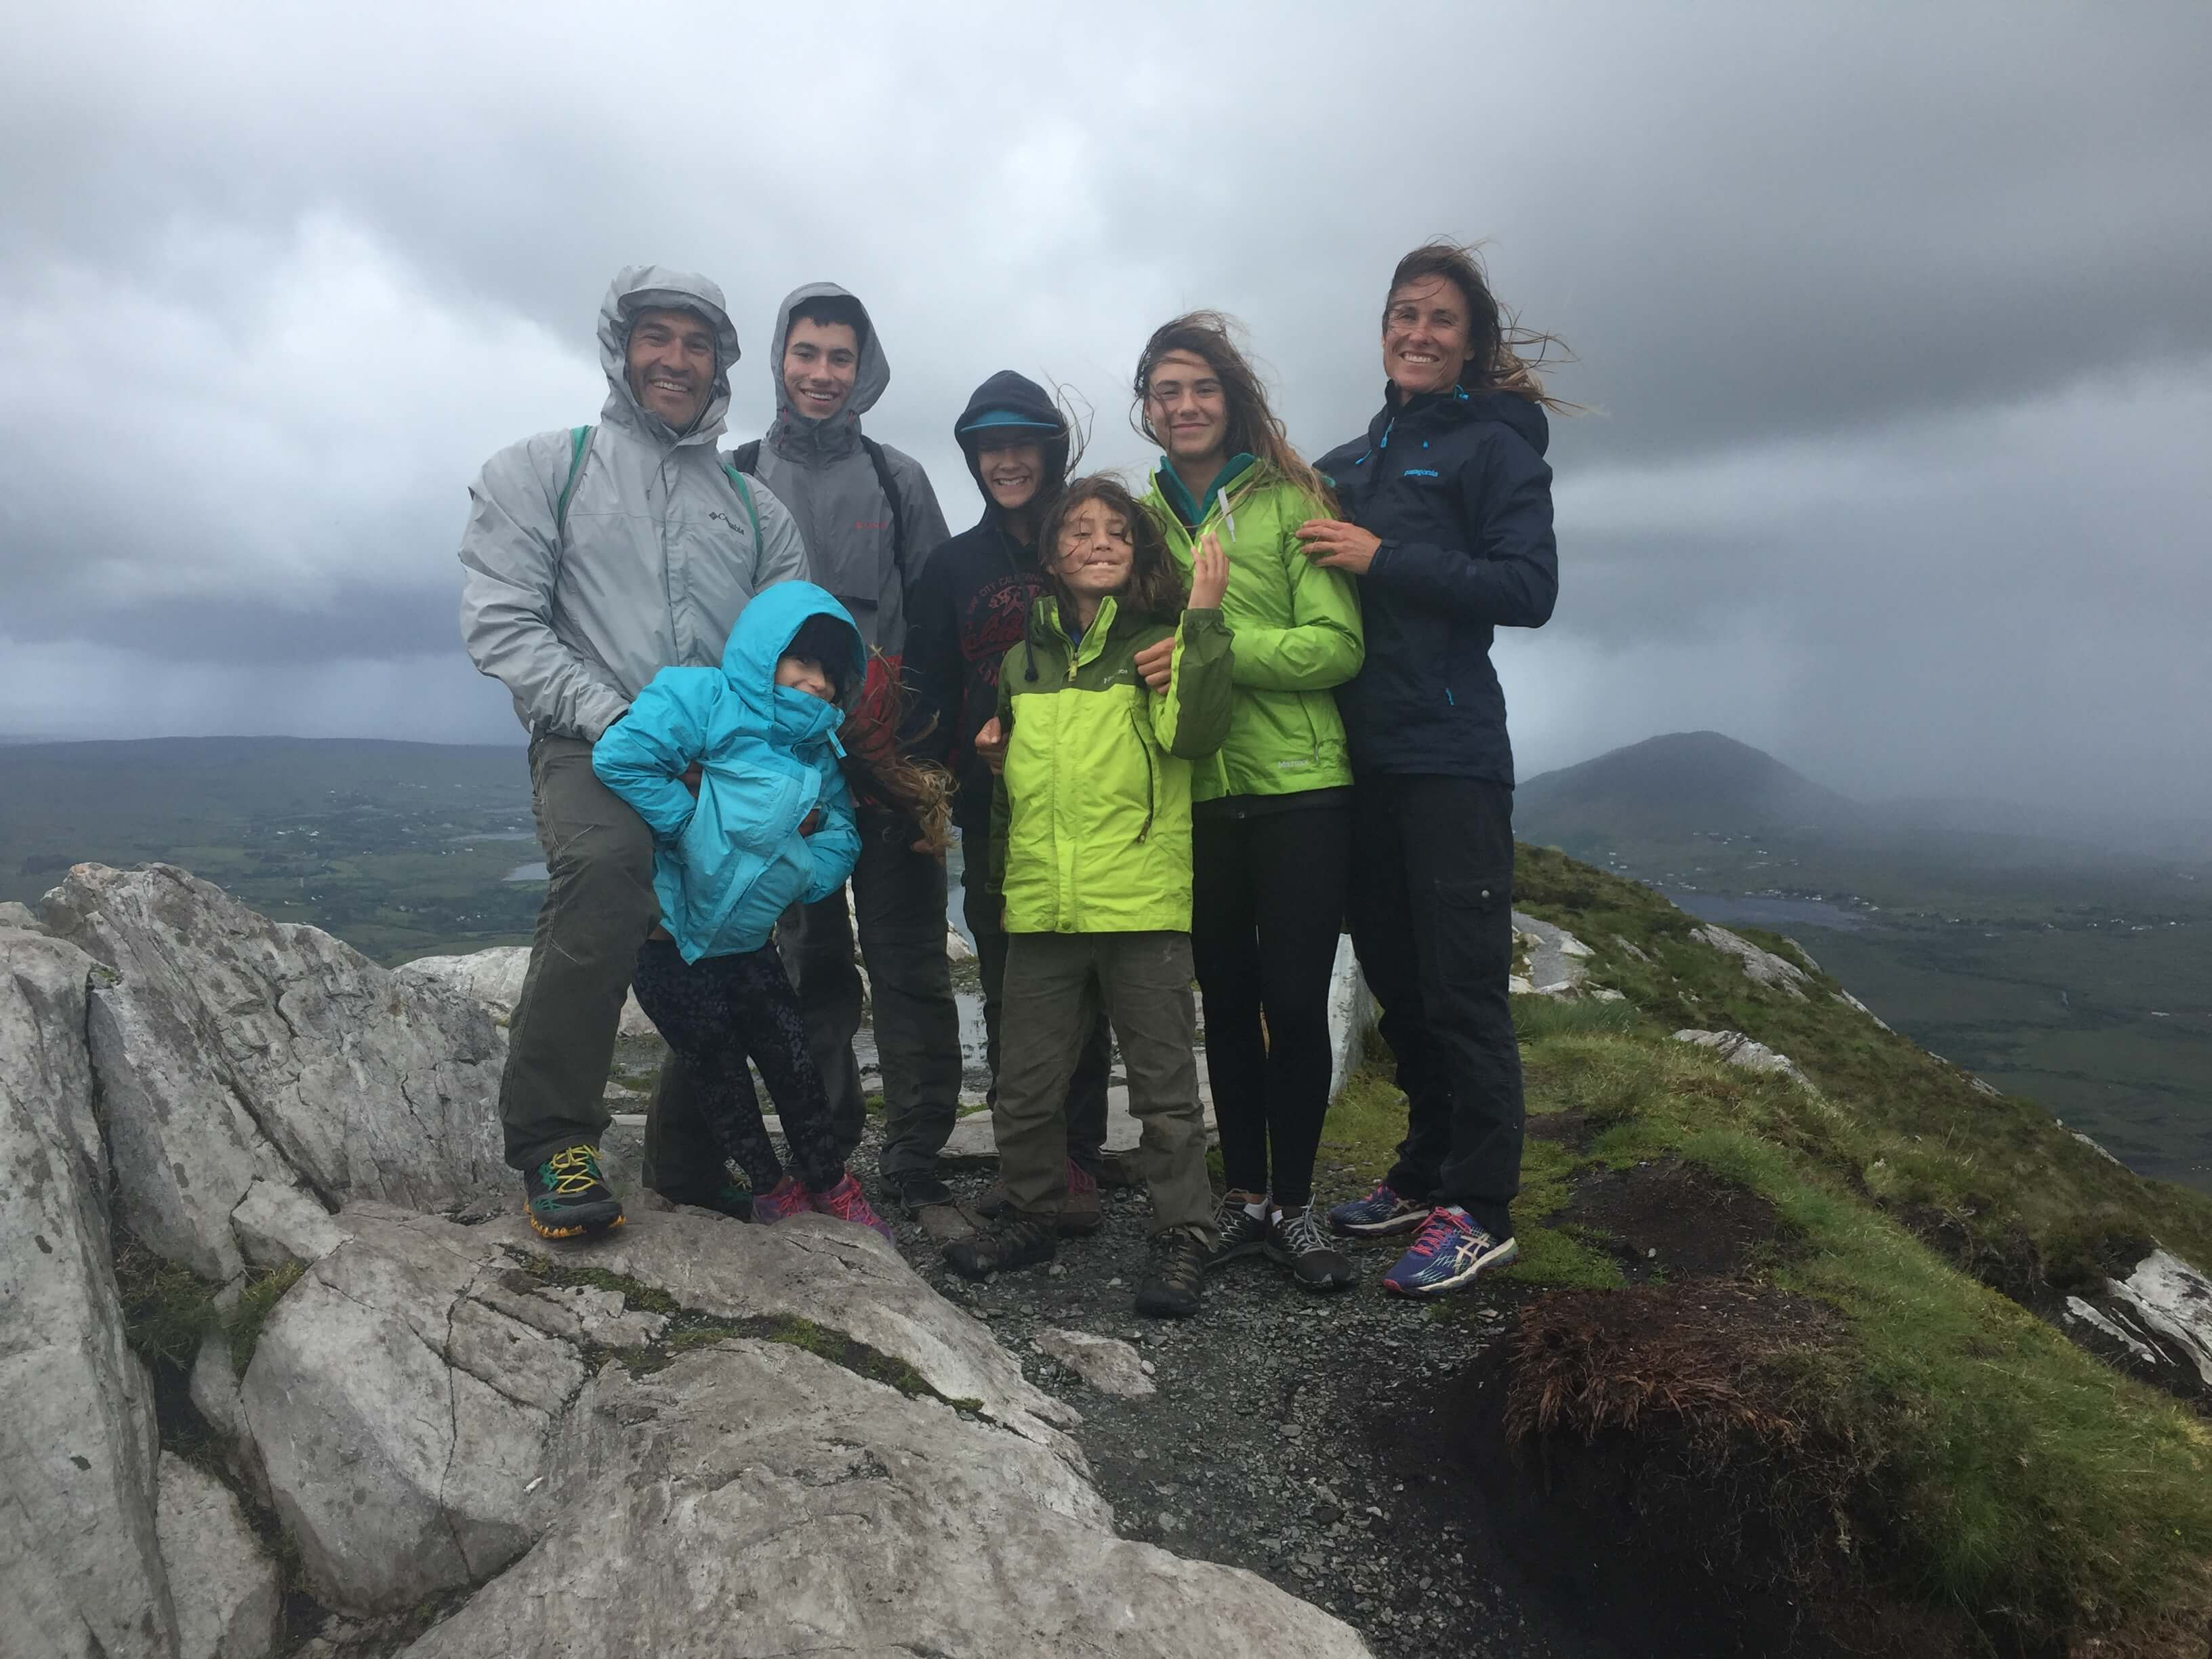 Rainstorm in Ireland, How to Plan a successful Road Trip